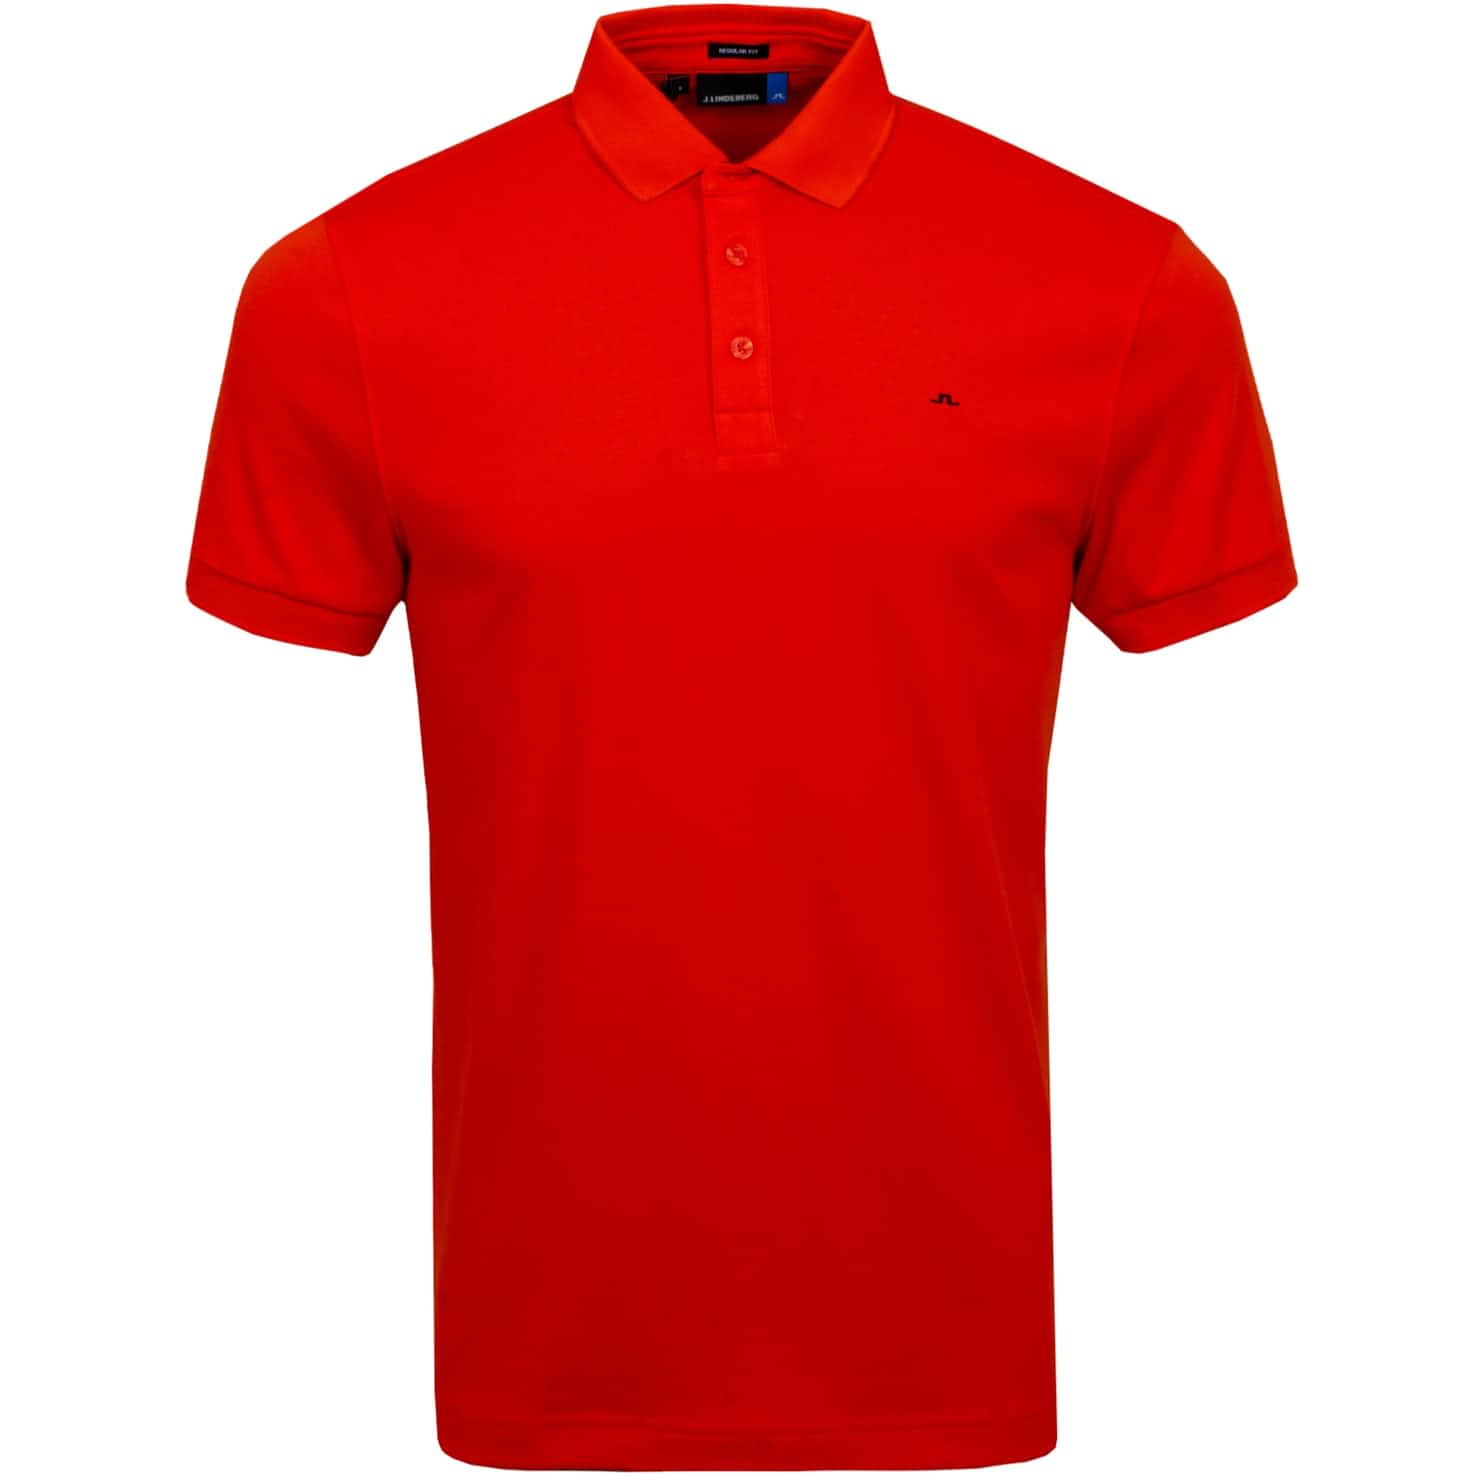 Stan Regular Fit Club Pique Tomato Red - SS20